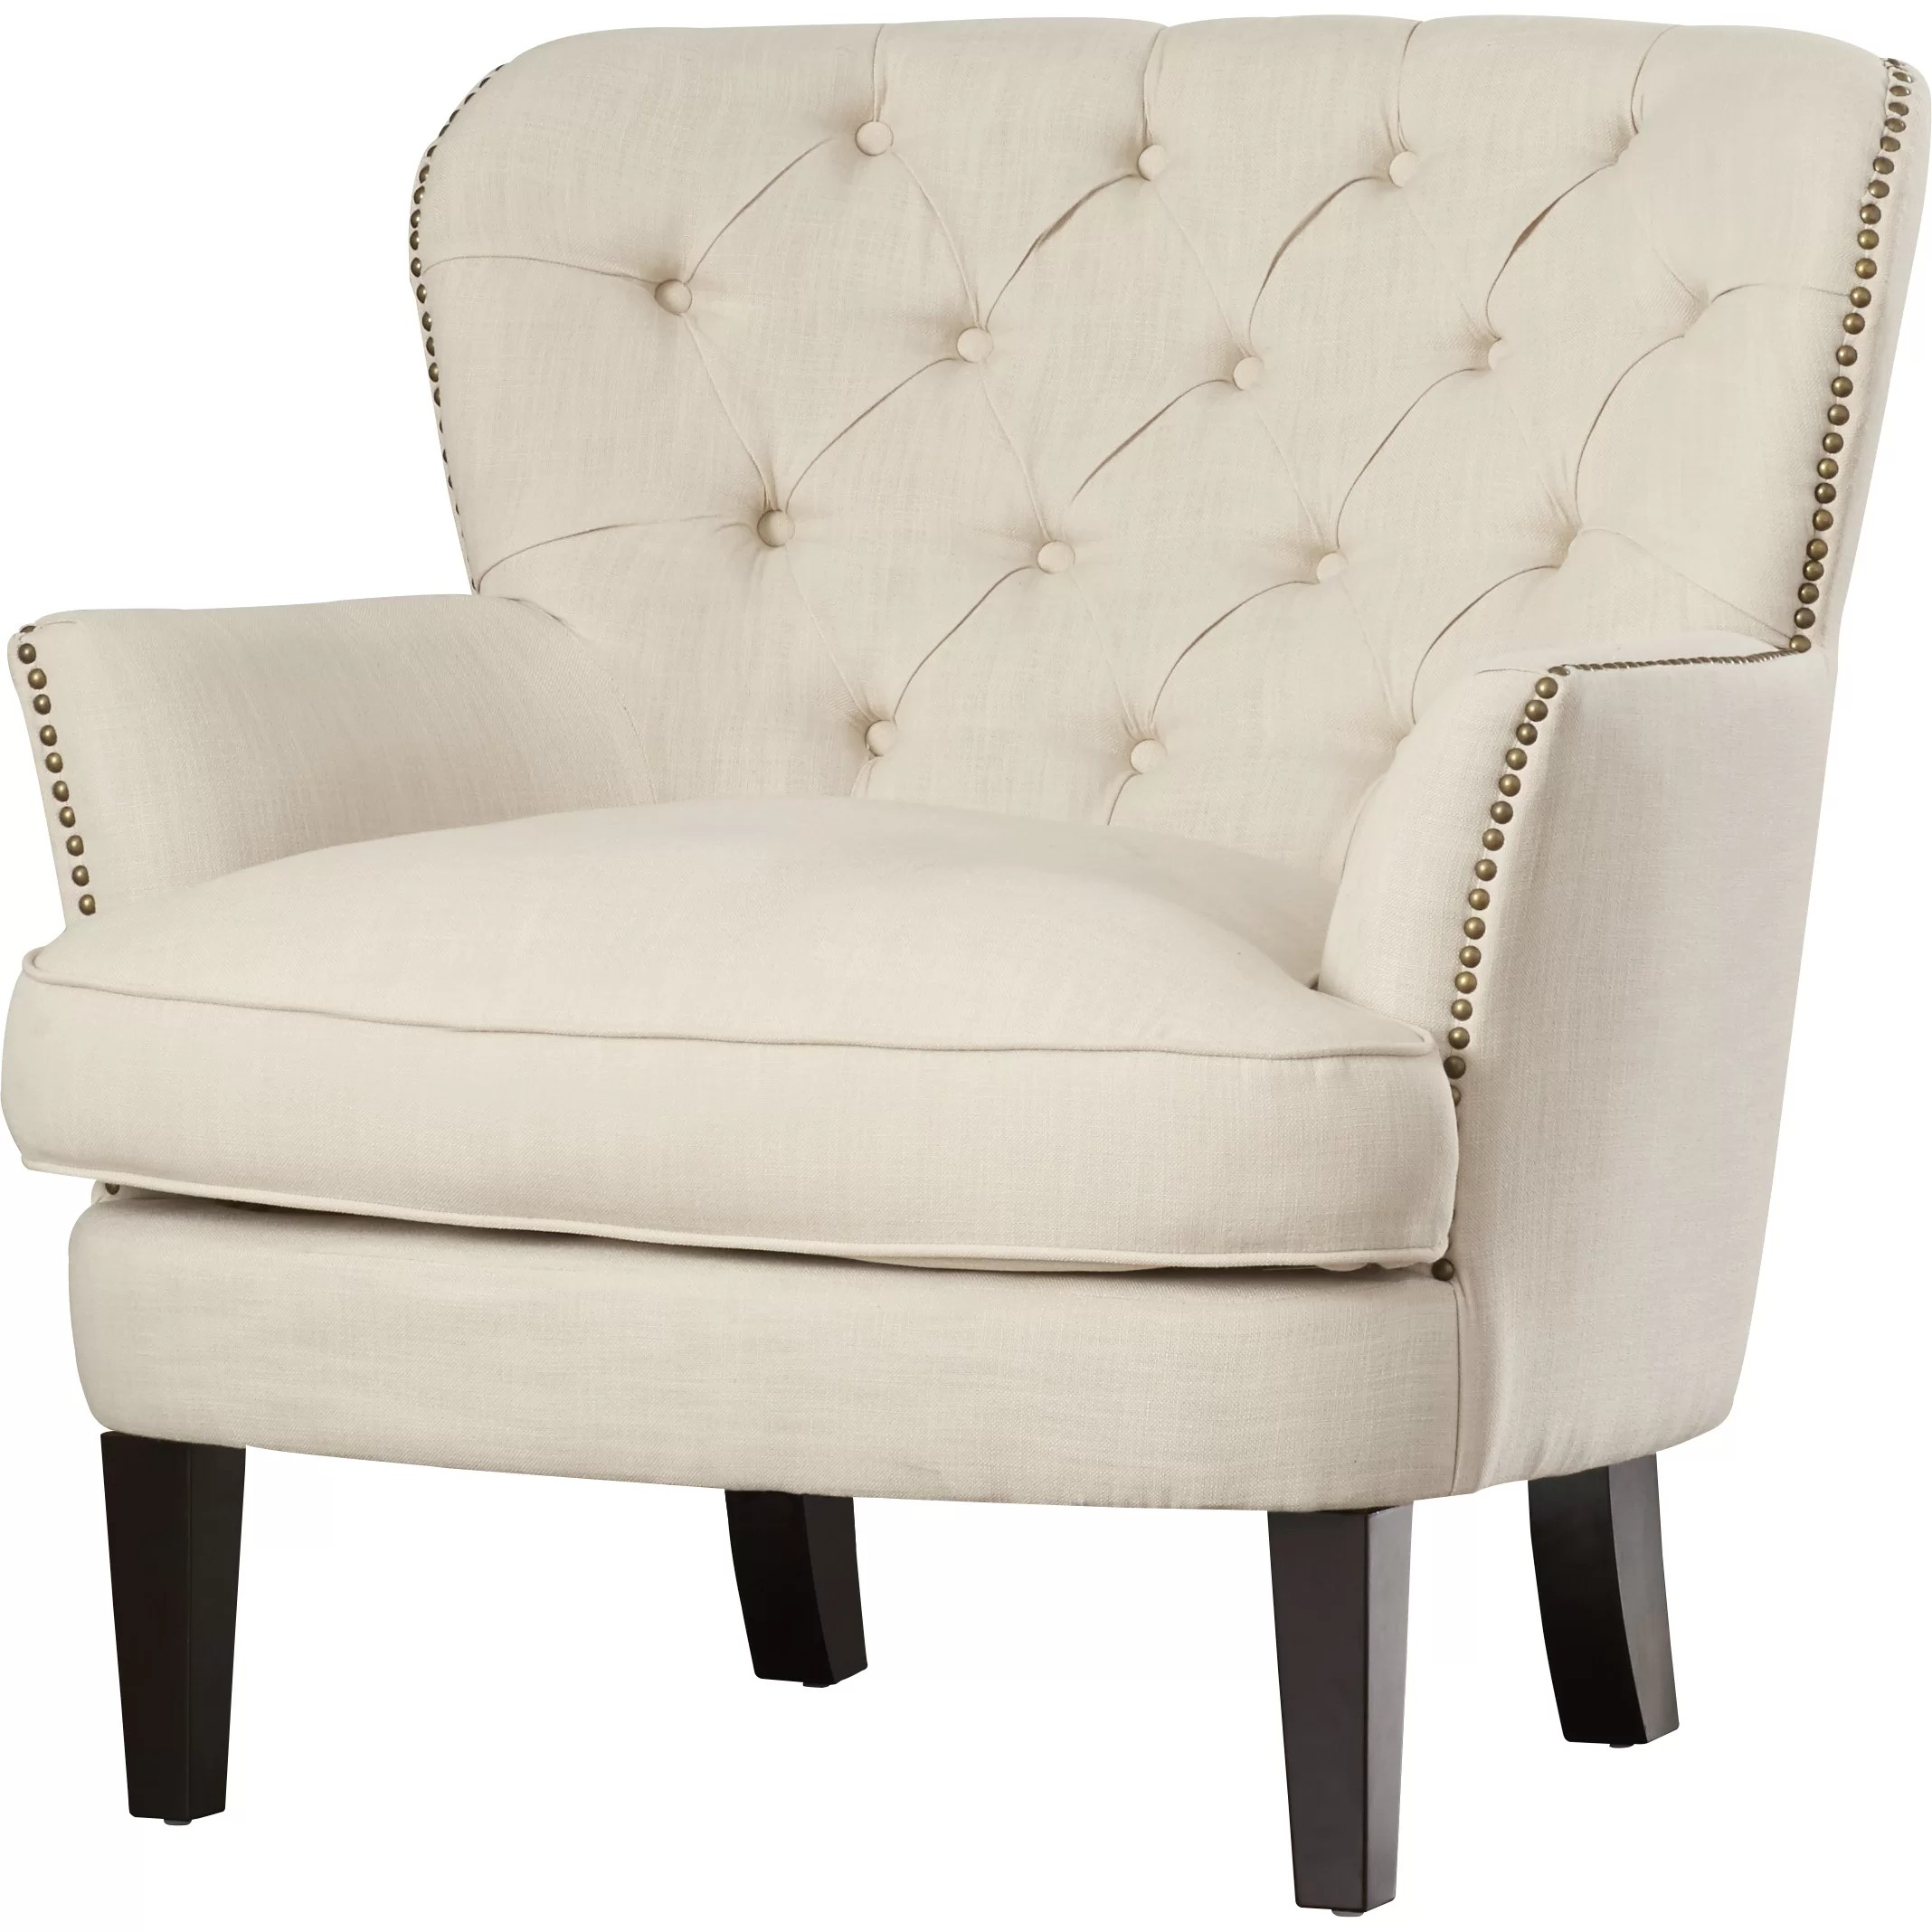 Upholstered Accent Chairs With Arms Lark Manor Celestin Flour Upholstered Arm Chair And Reviews